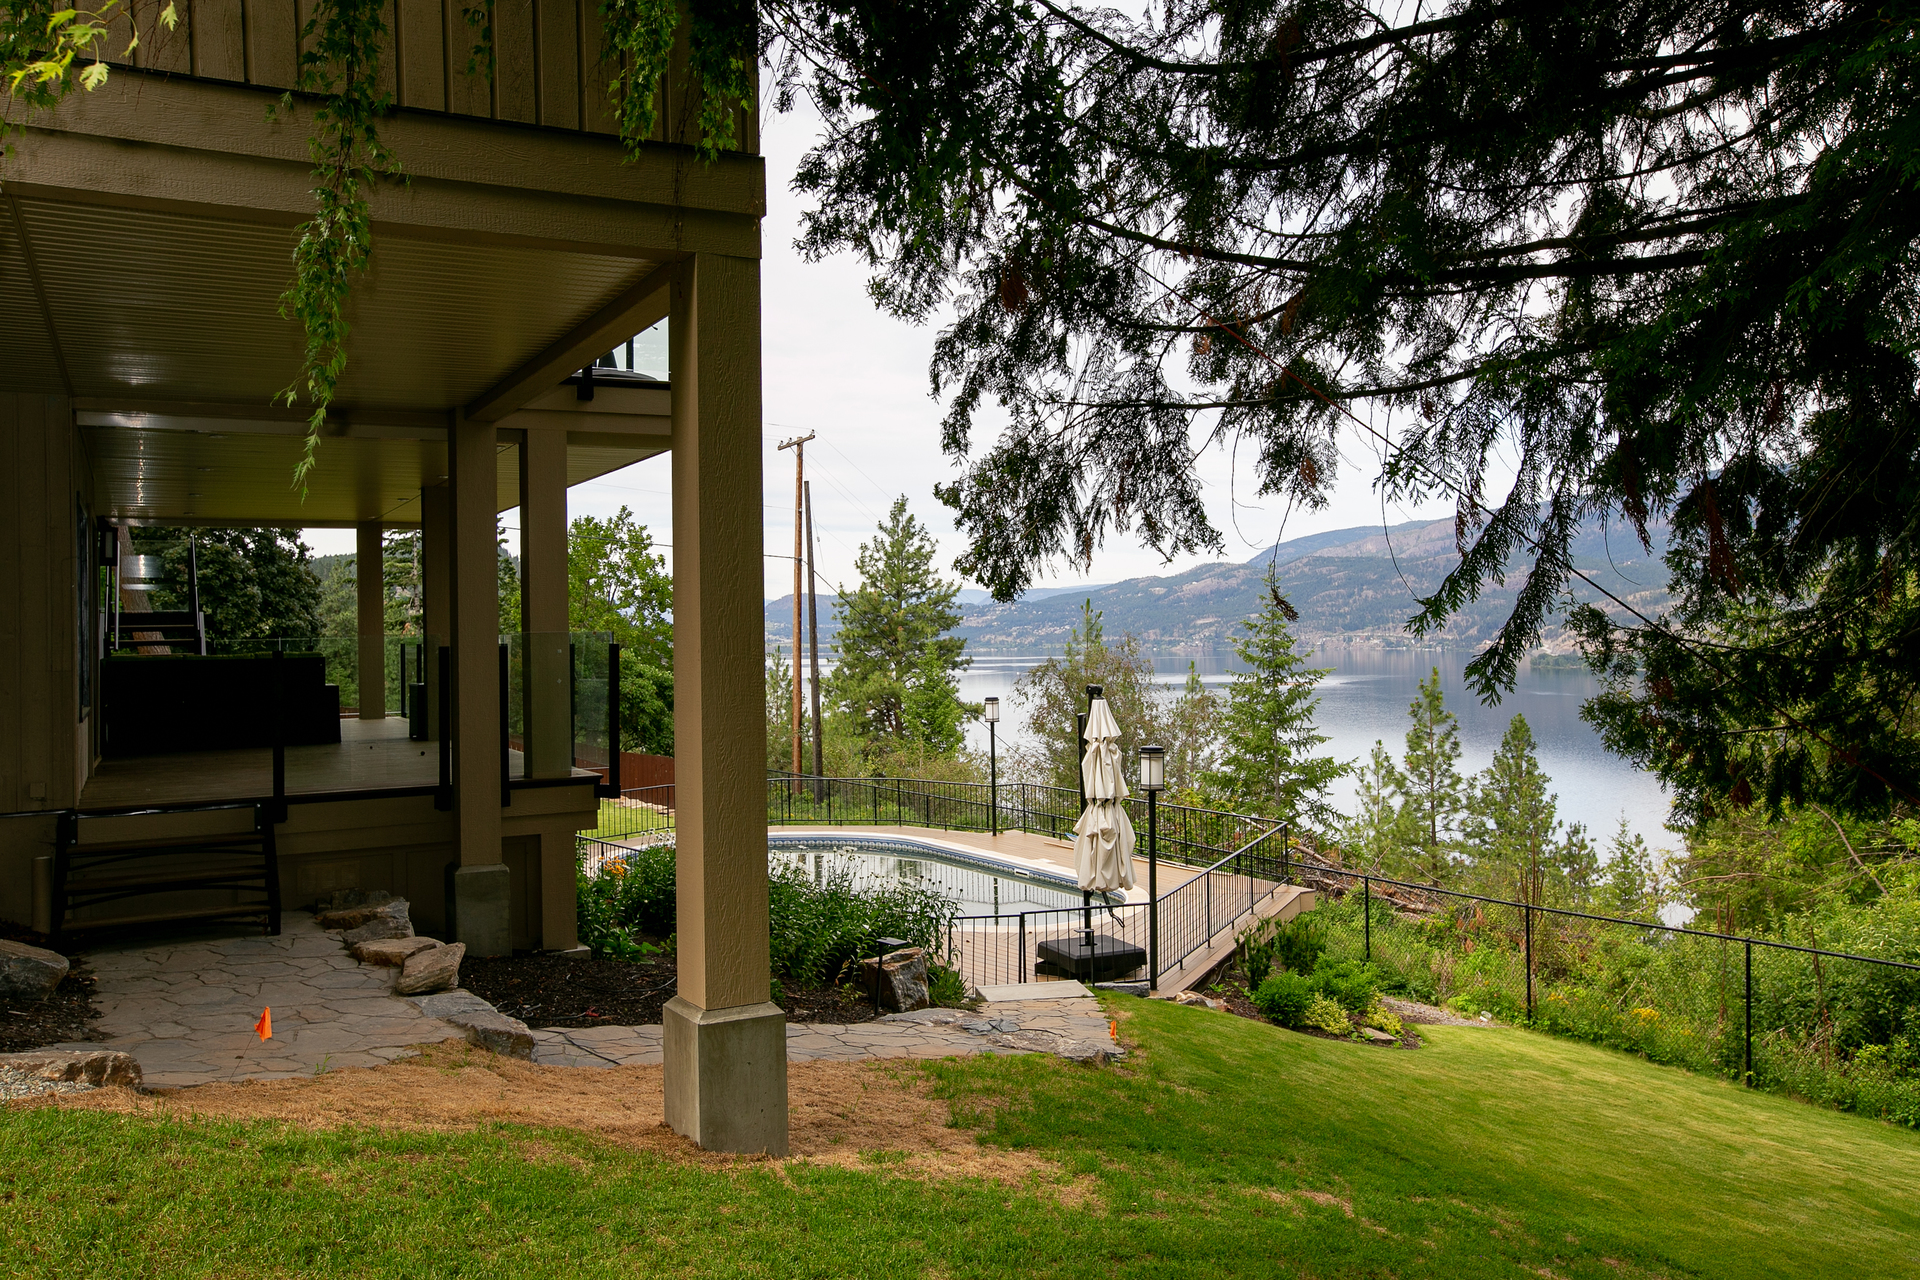 5d3_9291-edit at 312 Clifton Road, Kelowna, Central Okanagan